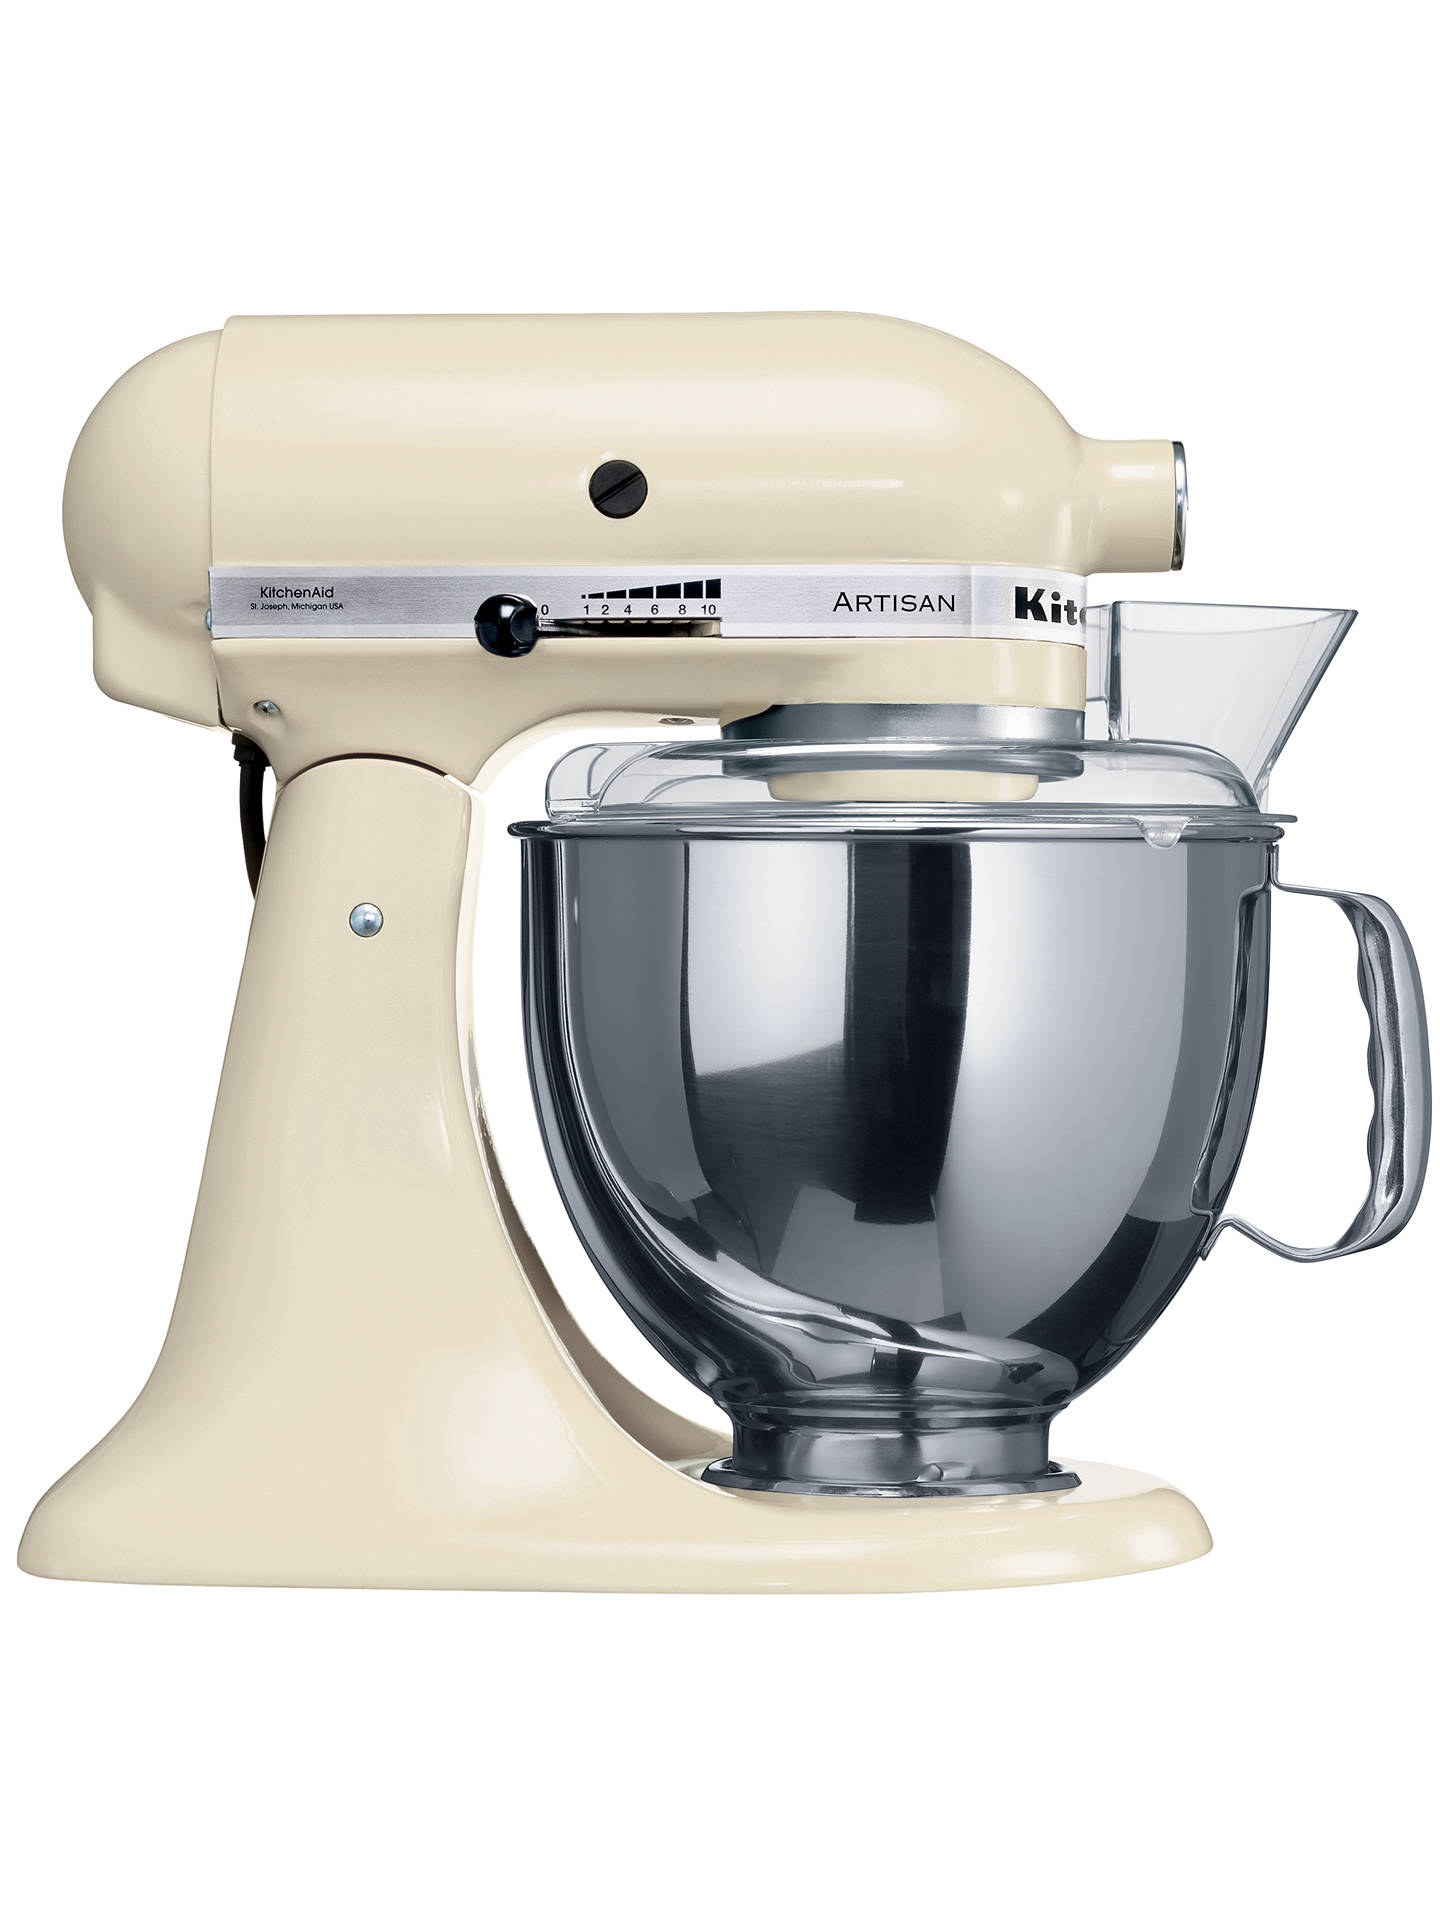 Kitchenaid 150 Artisan 4 8l Stand Mixer At John Lewis